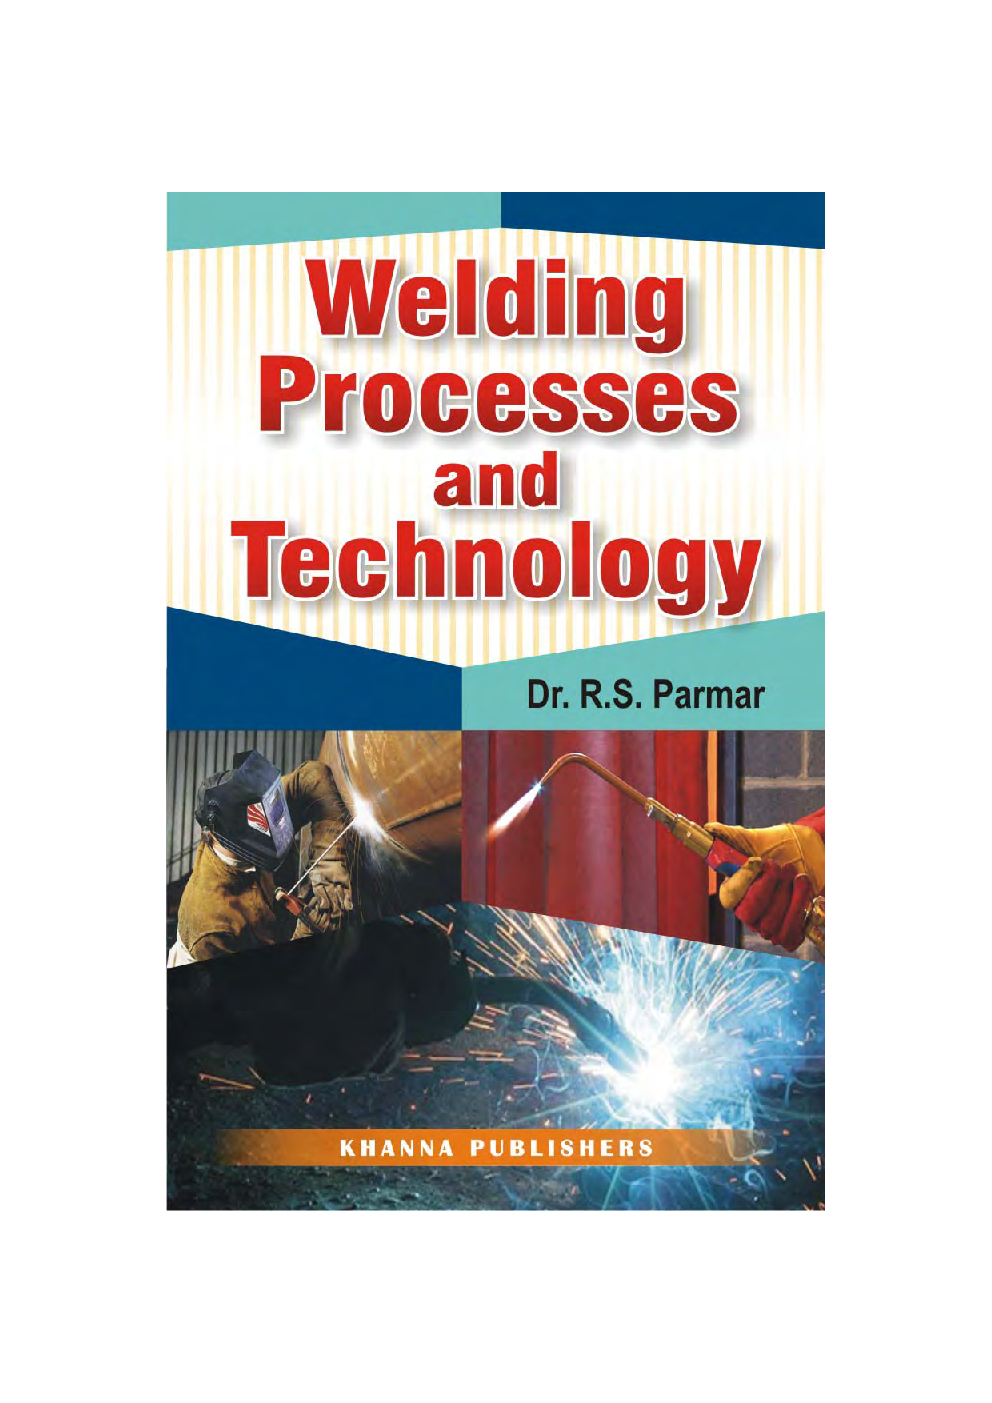 Download Welding Processes And Technology by Dr. R. S. Parmar PDF Online